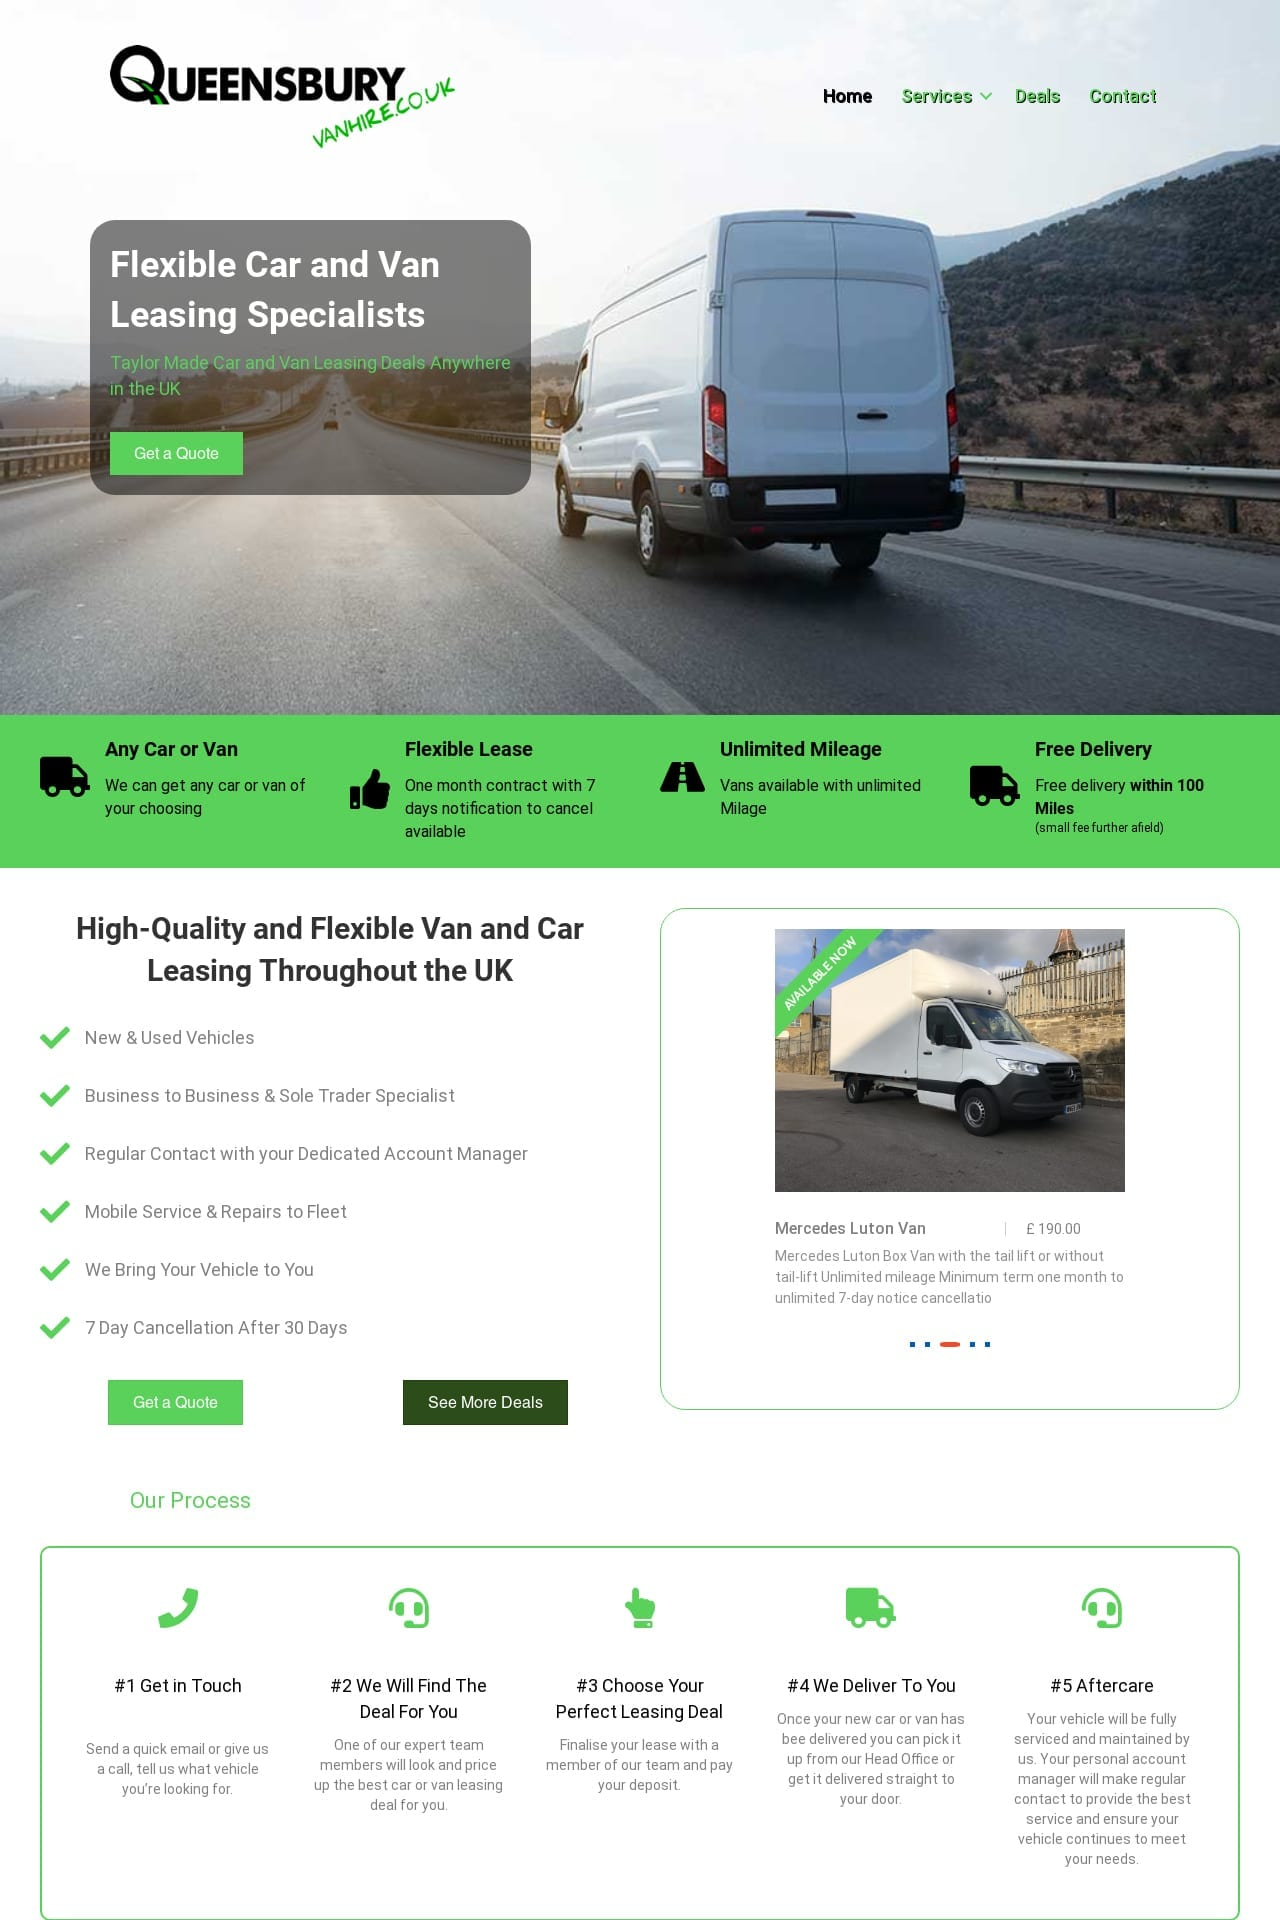 Full Screen Queensbury Van Hire website screen shot 4x6